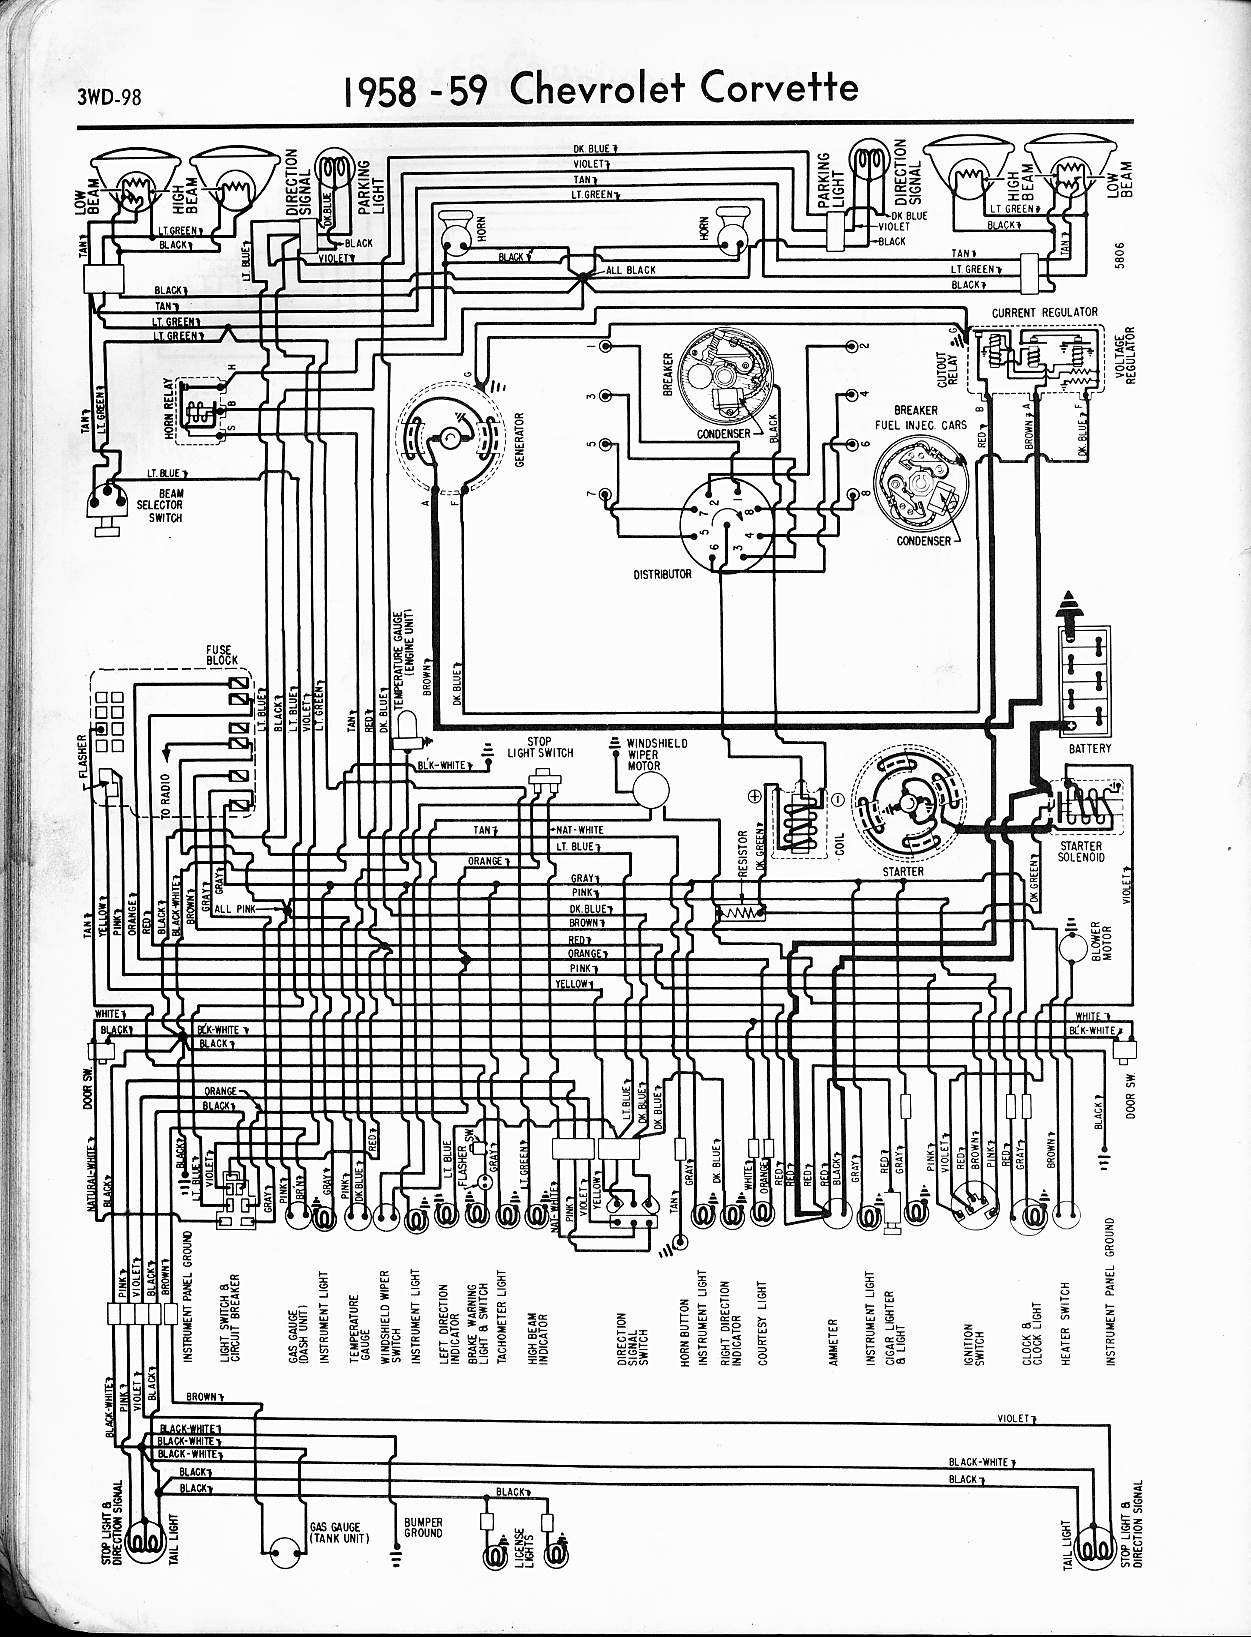 1965 chevy impala wiring diagram free download